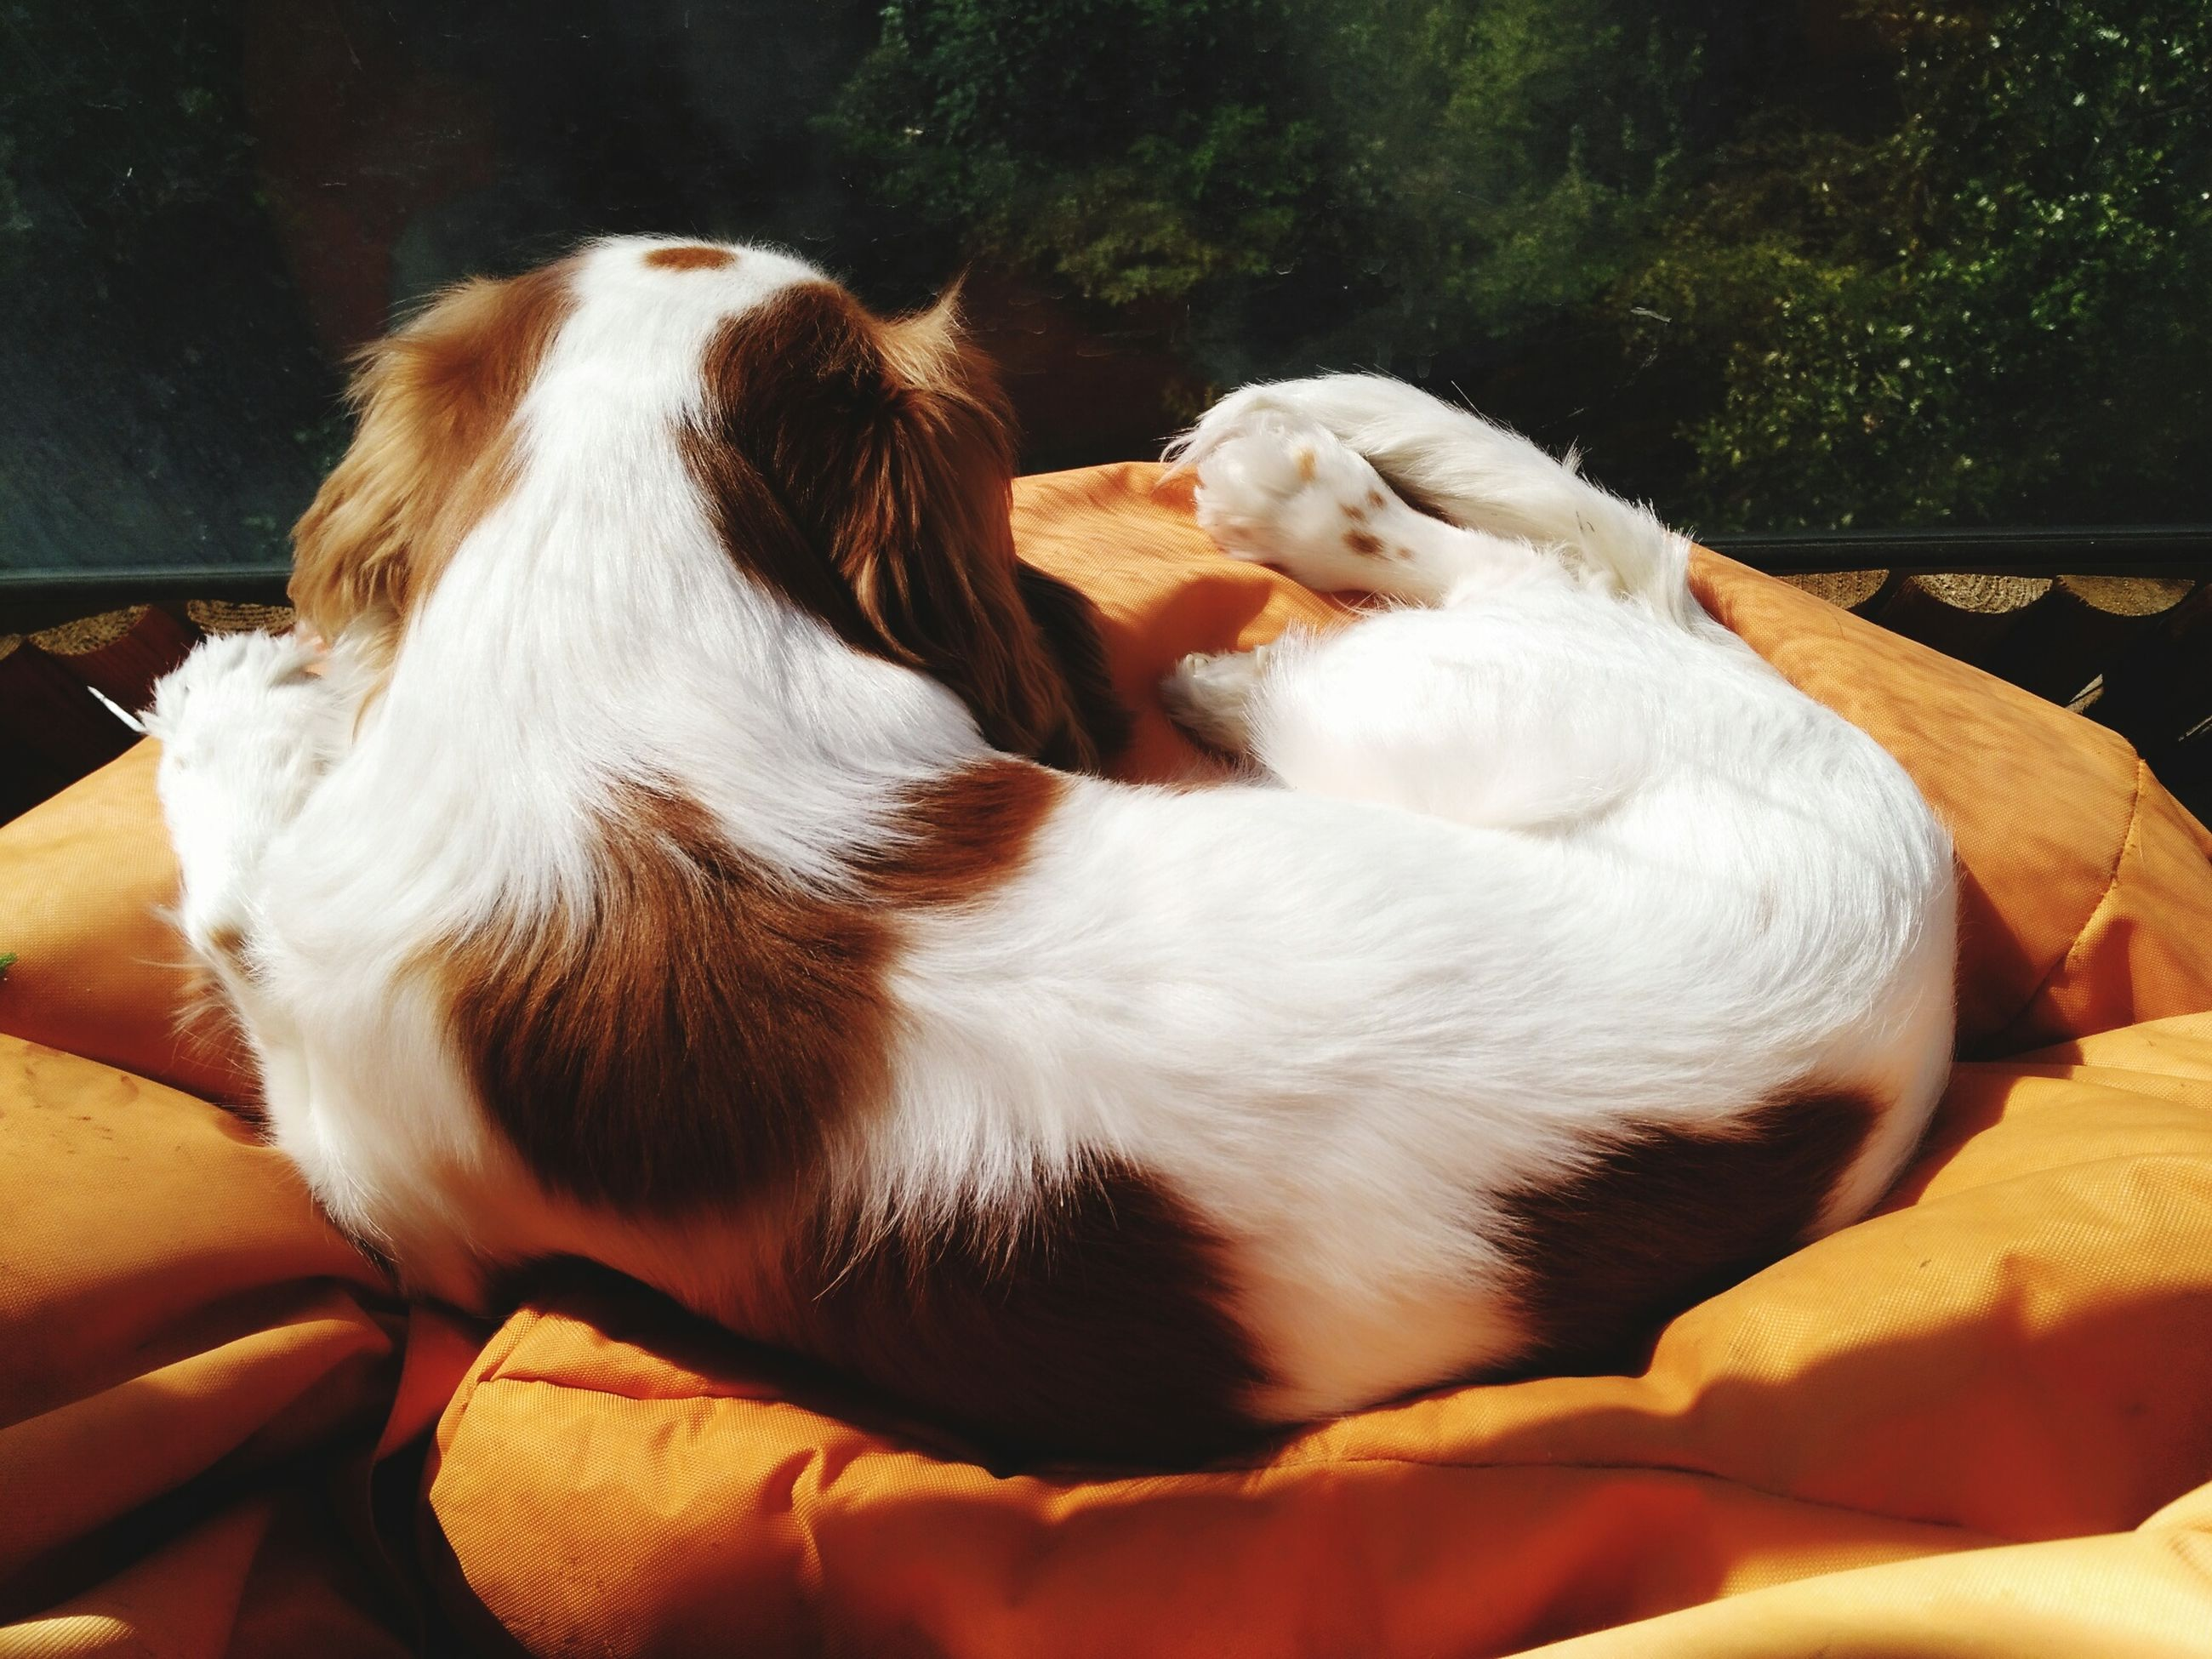 animal themes, domestic animals, pets, one animal, dog, mammal, animal head, resting, relaxation, day, zoology, pampered pets, loyalty, no people, animal hair, animal